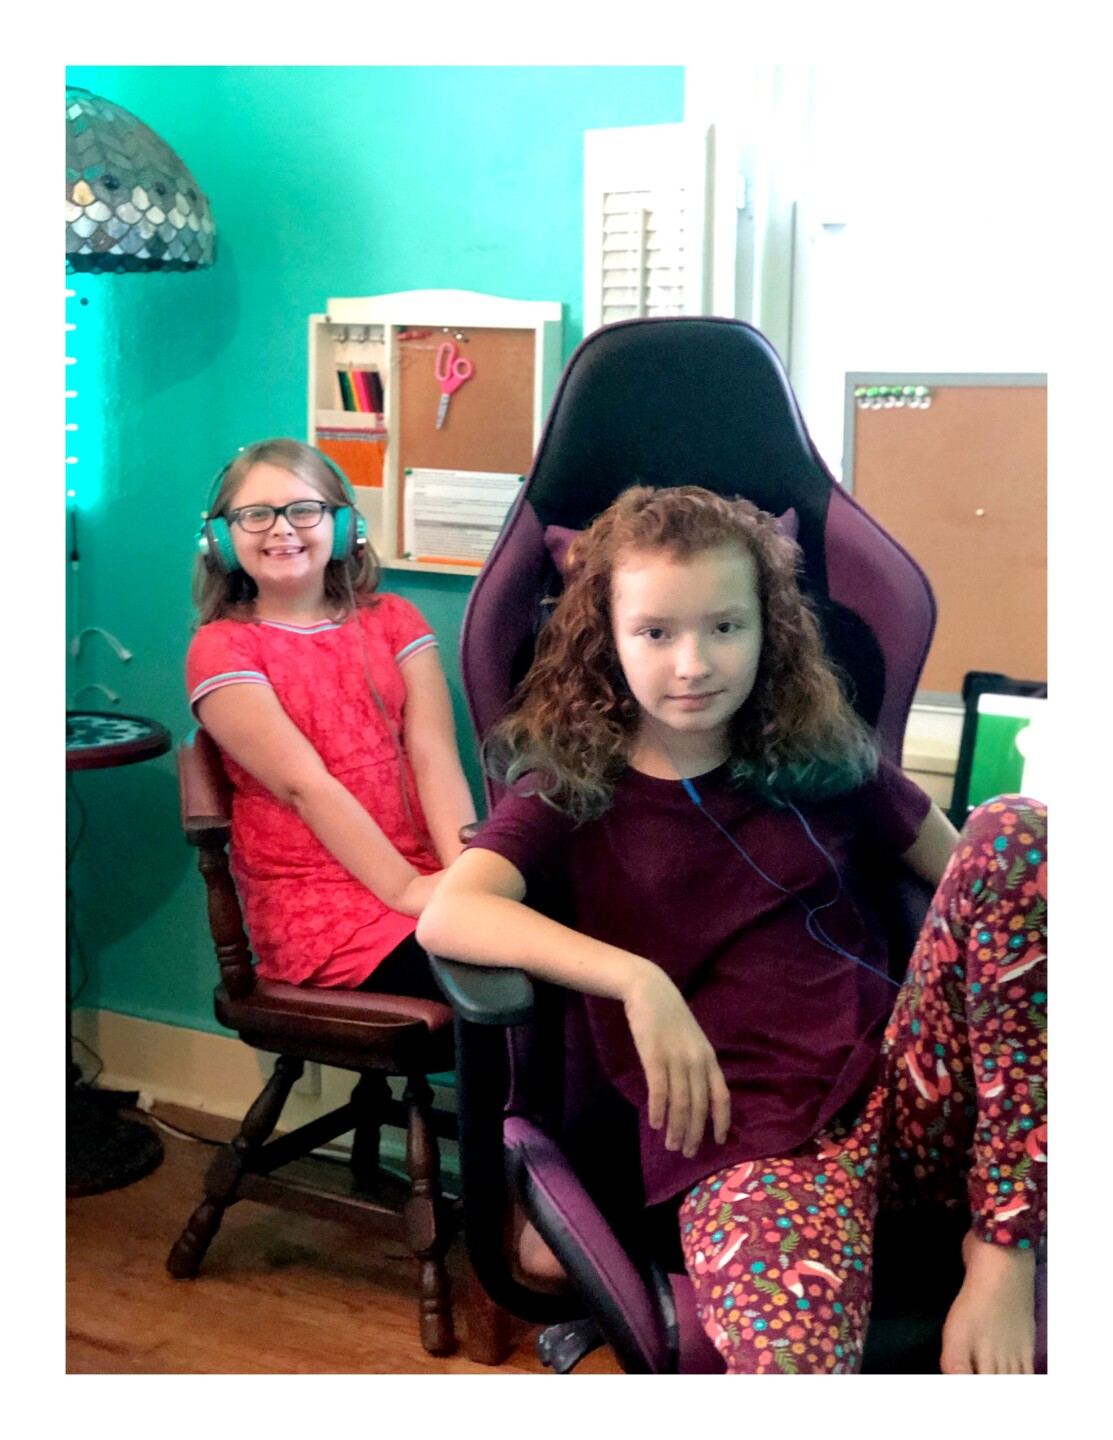 Payton 4th grade, Harley 5th grade and Harper-all ready to learn!.jpg